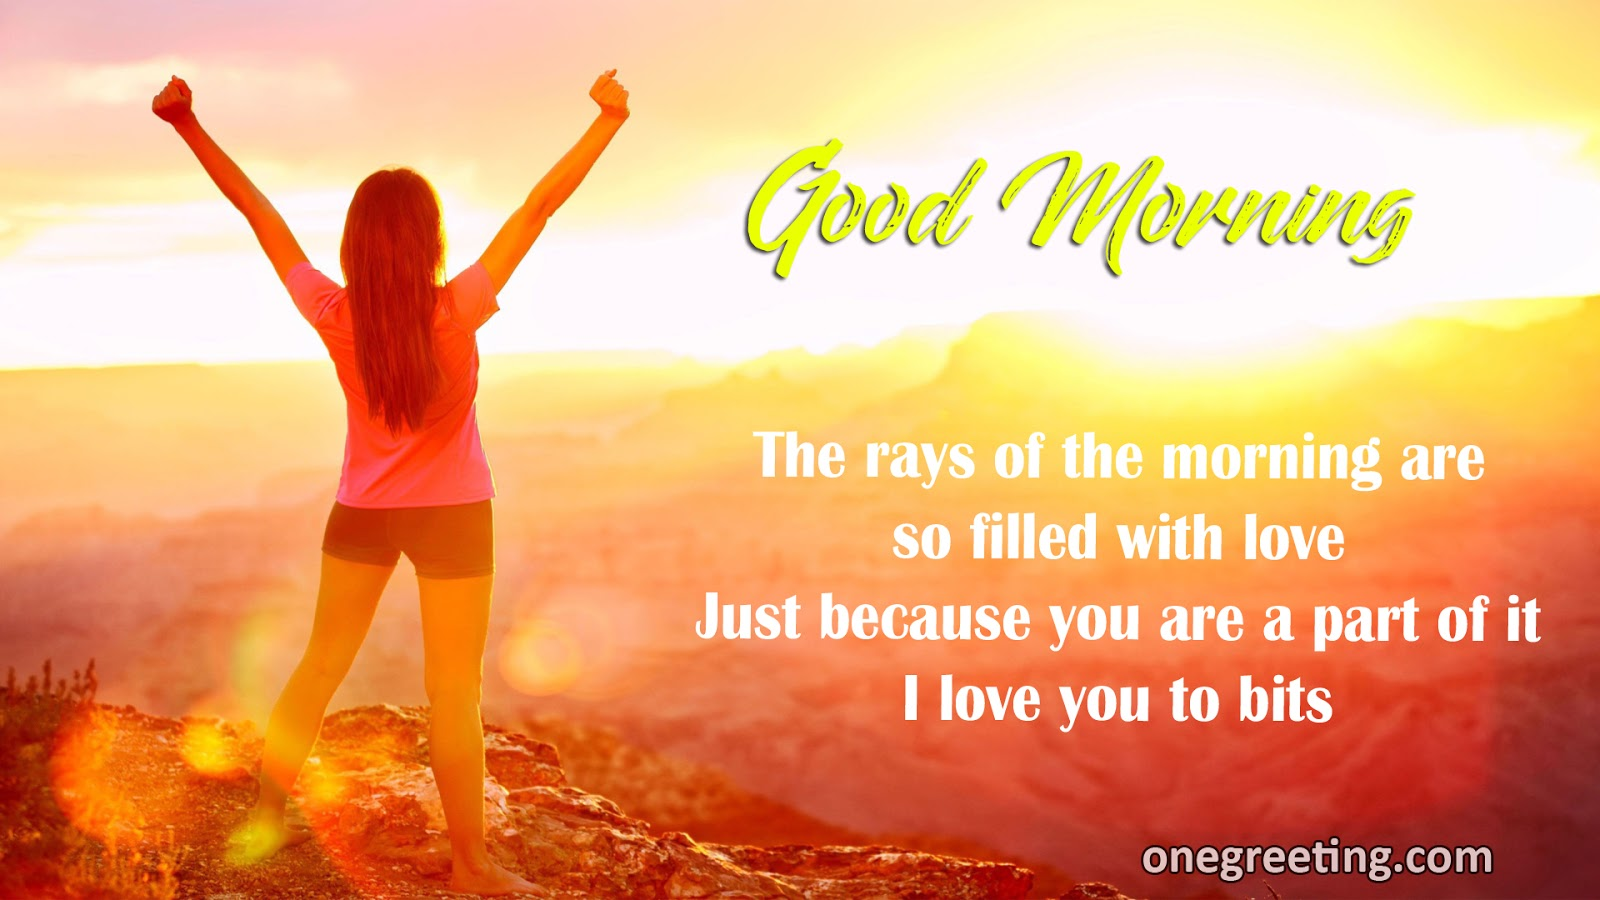 The rays of the morning are so filled with love good morning one the rays of the morning are so filled with love good morning kristyandbryce Images